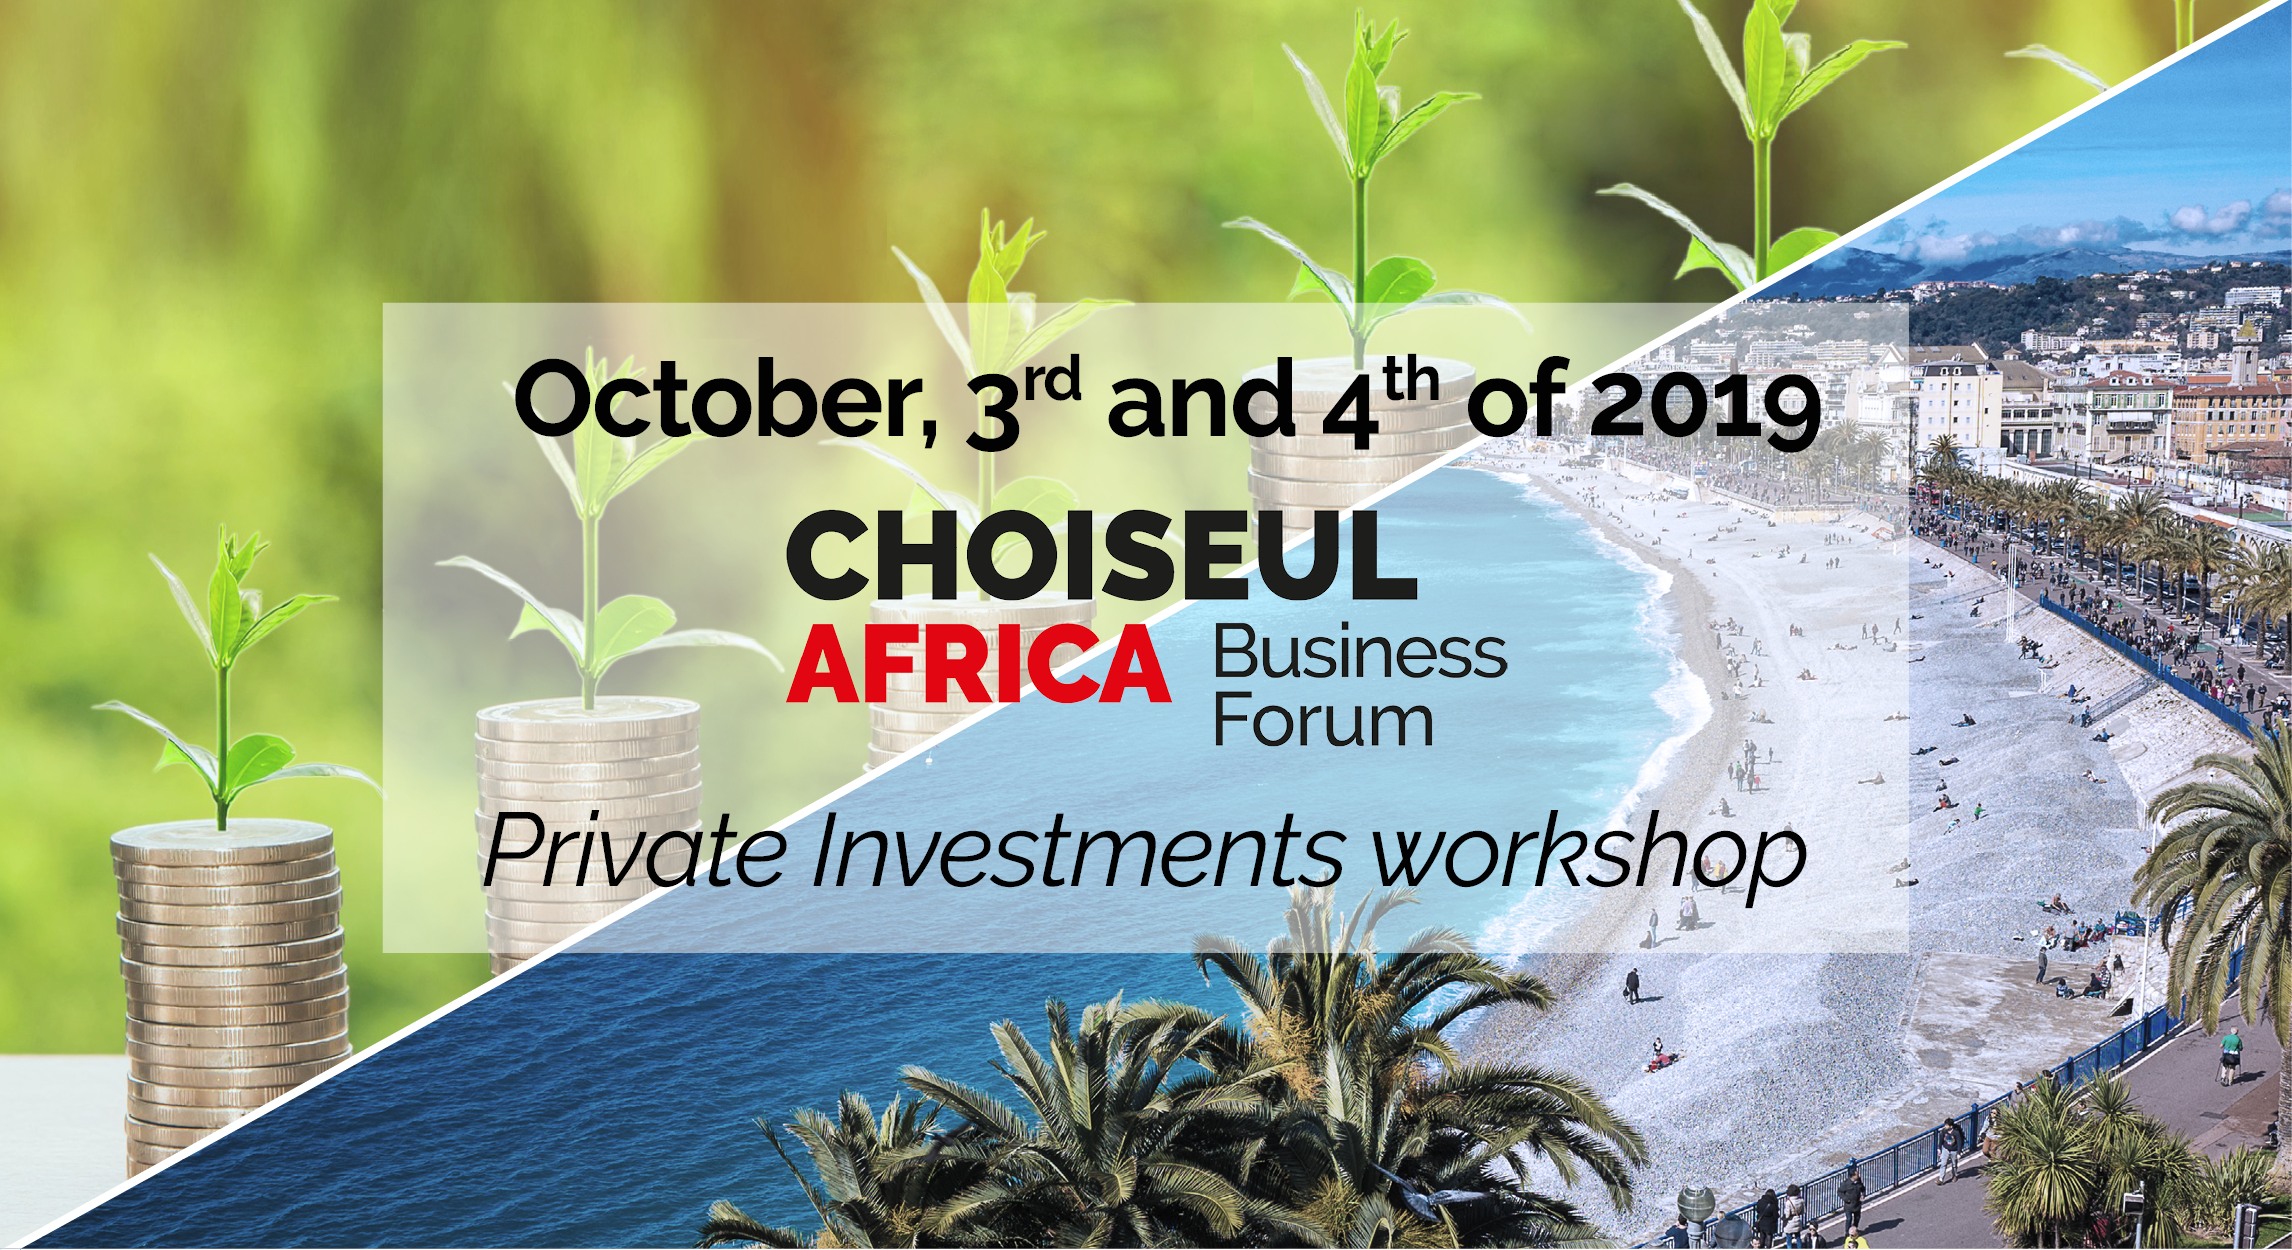 Which successful strategy to attract private investments in Africa?